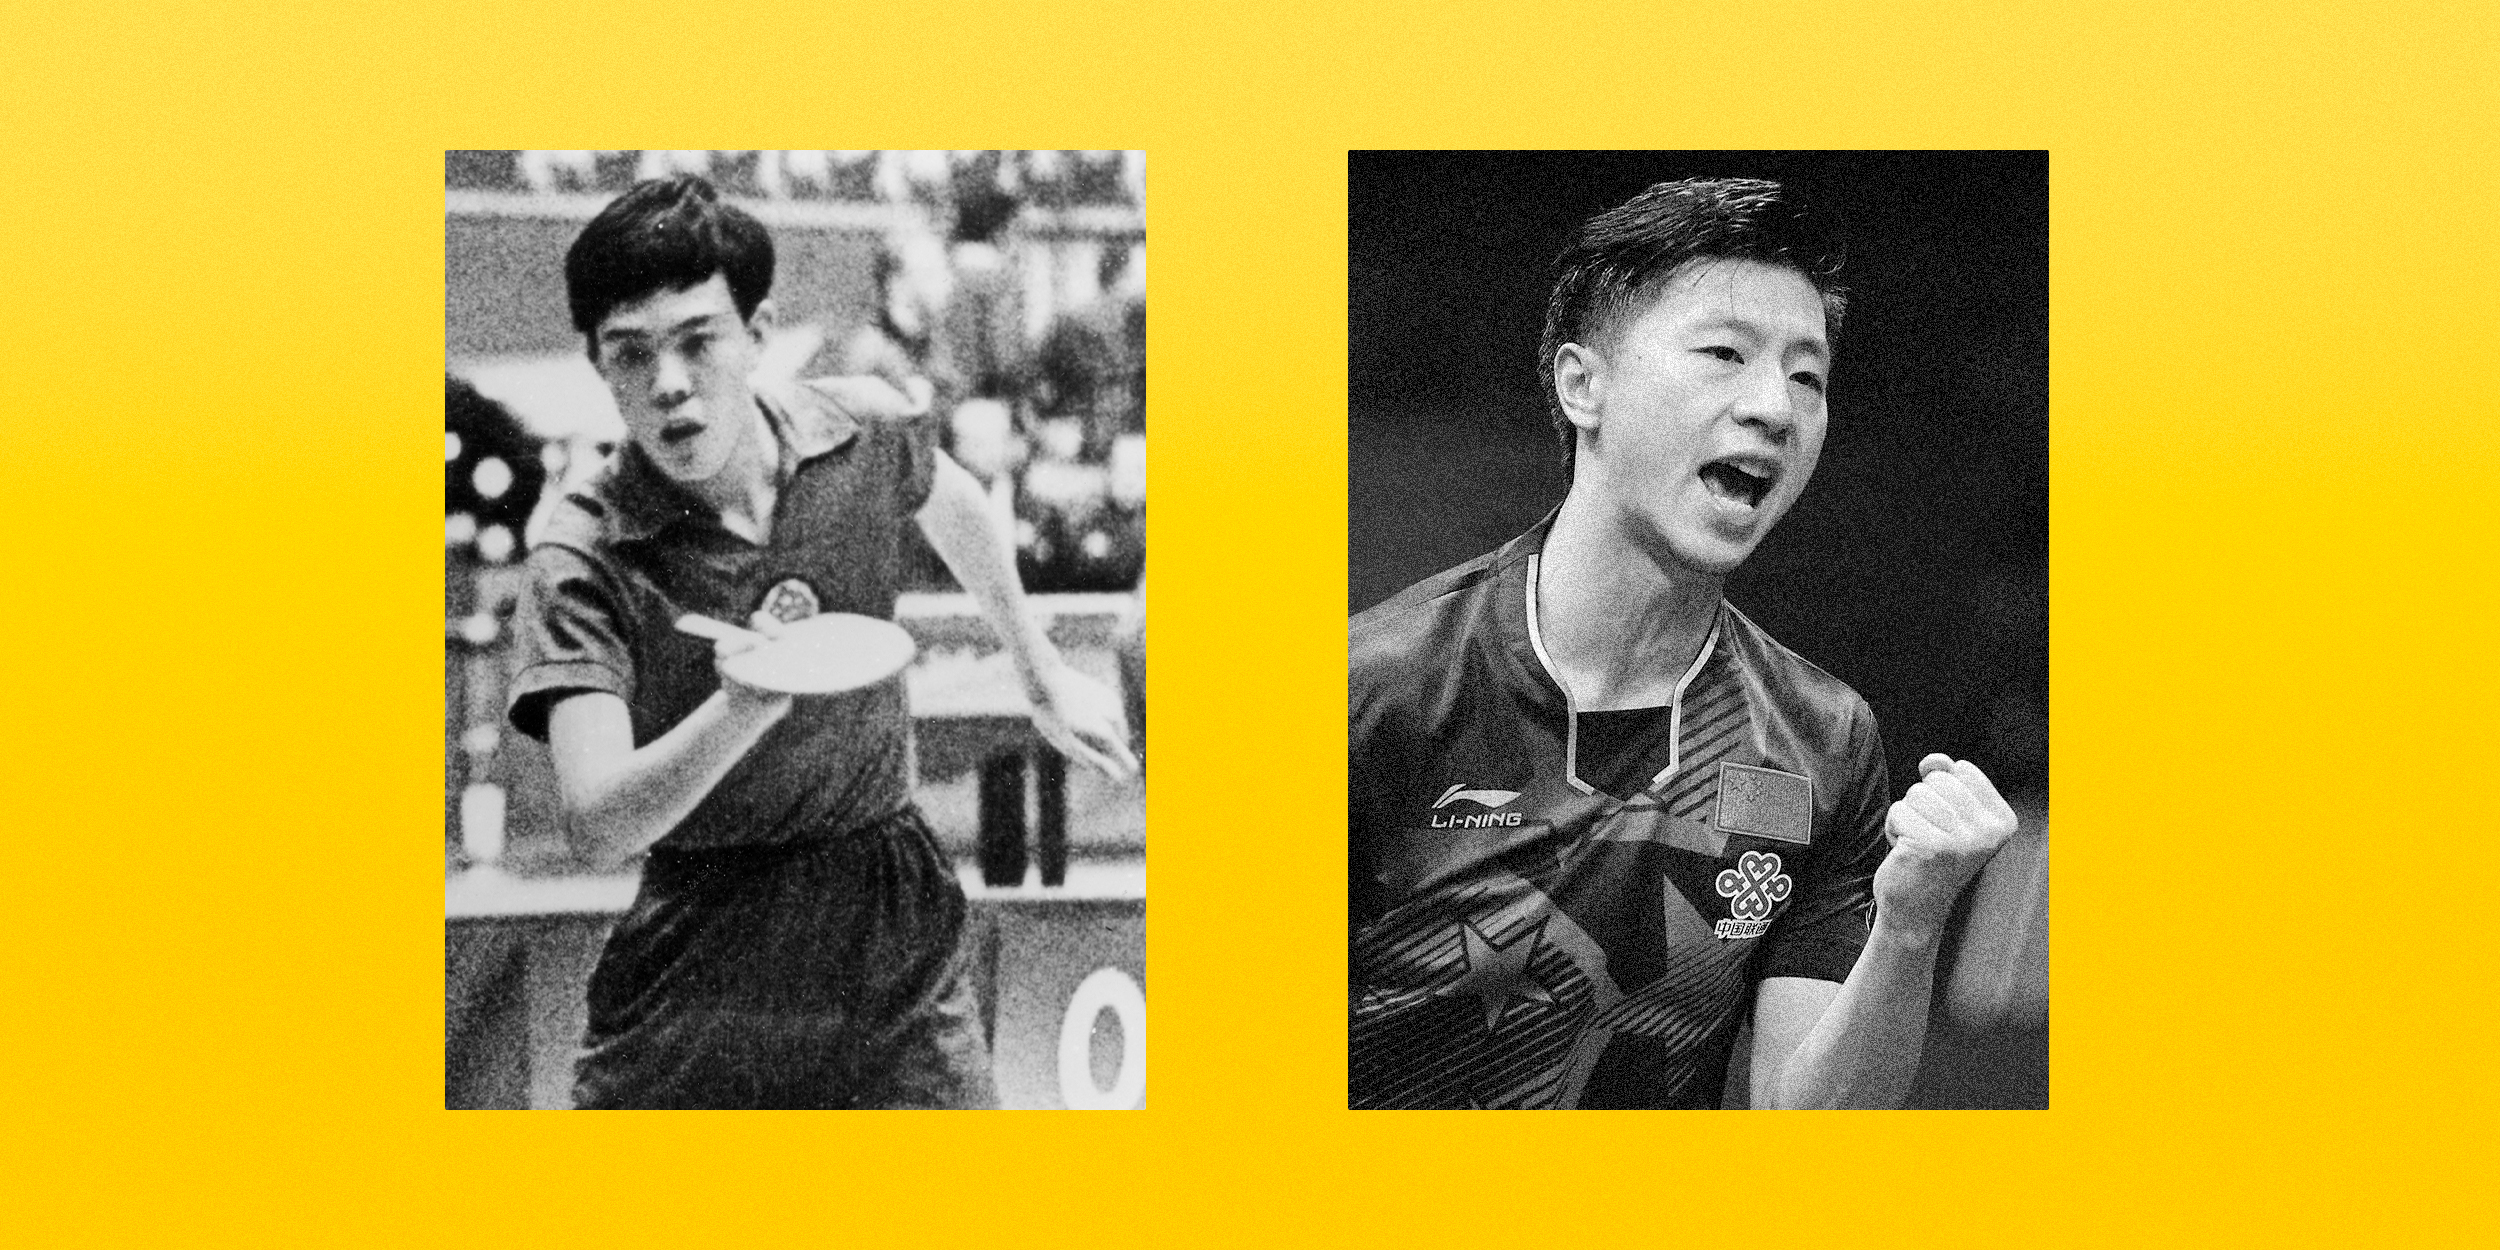 Once a tool for diplomacy, table tennis now viewed by China as so much more